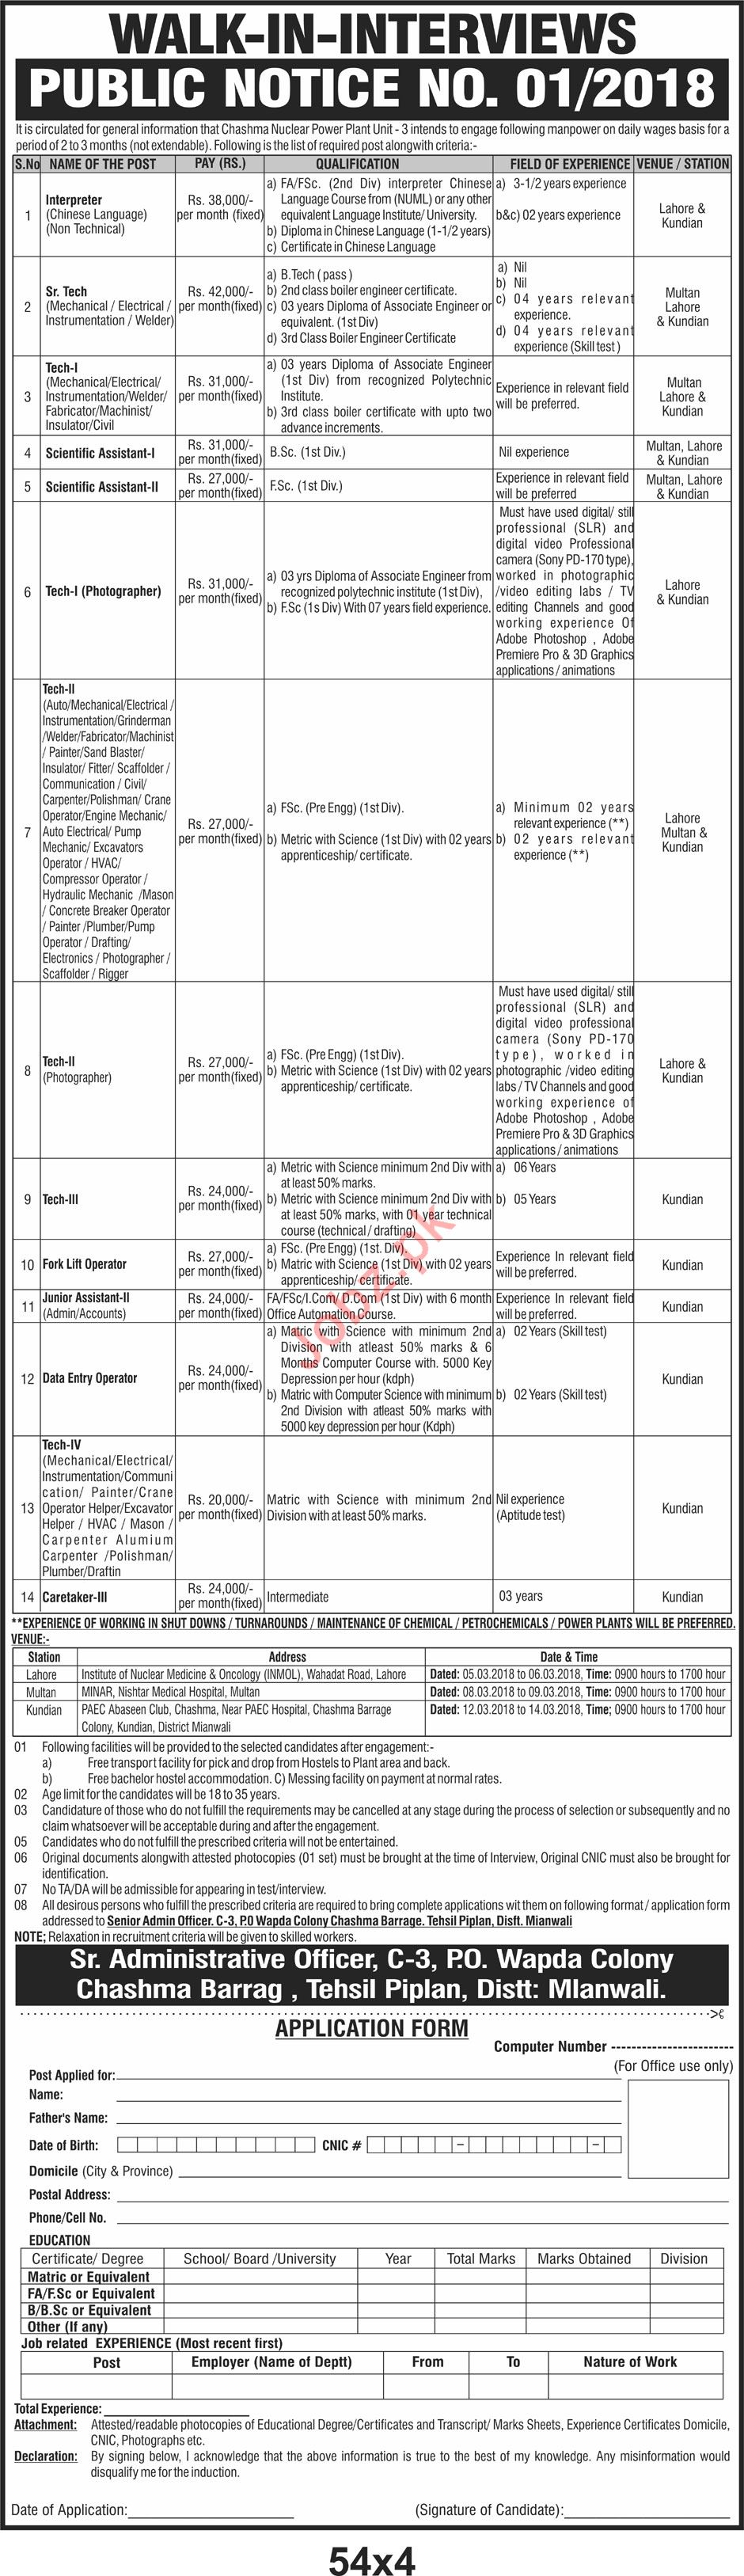 Chashma Nuclear Power Plant Jobs Interview 2018